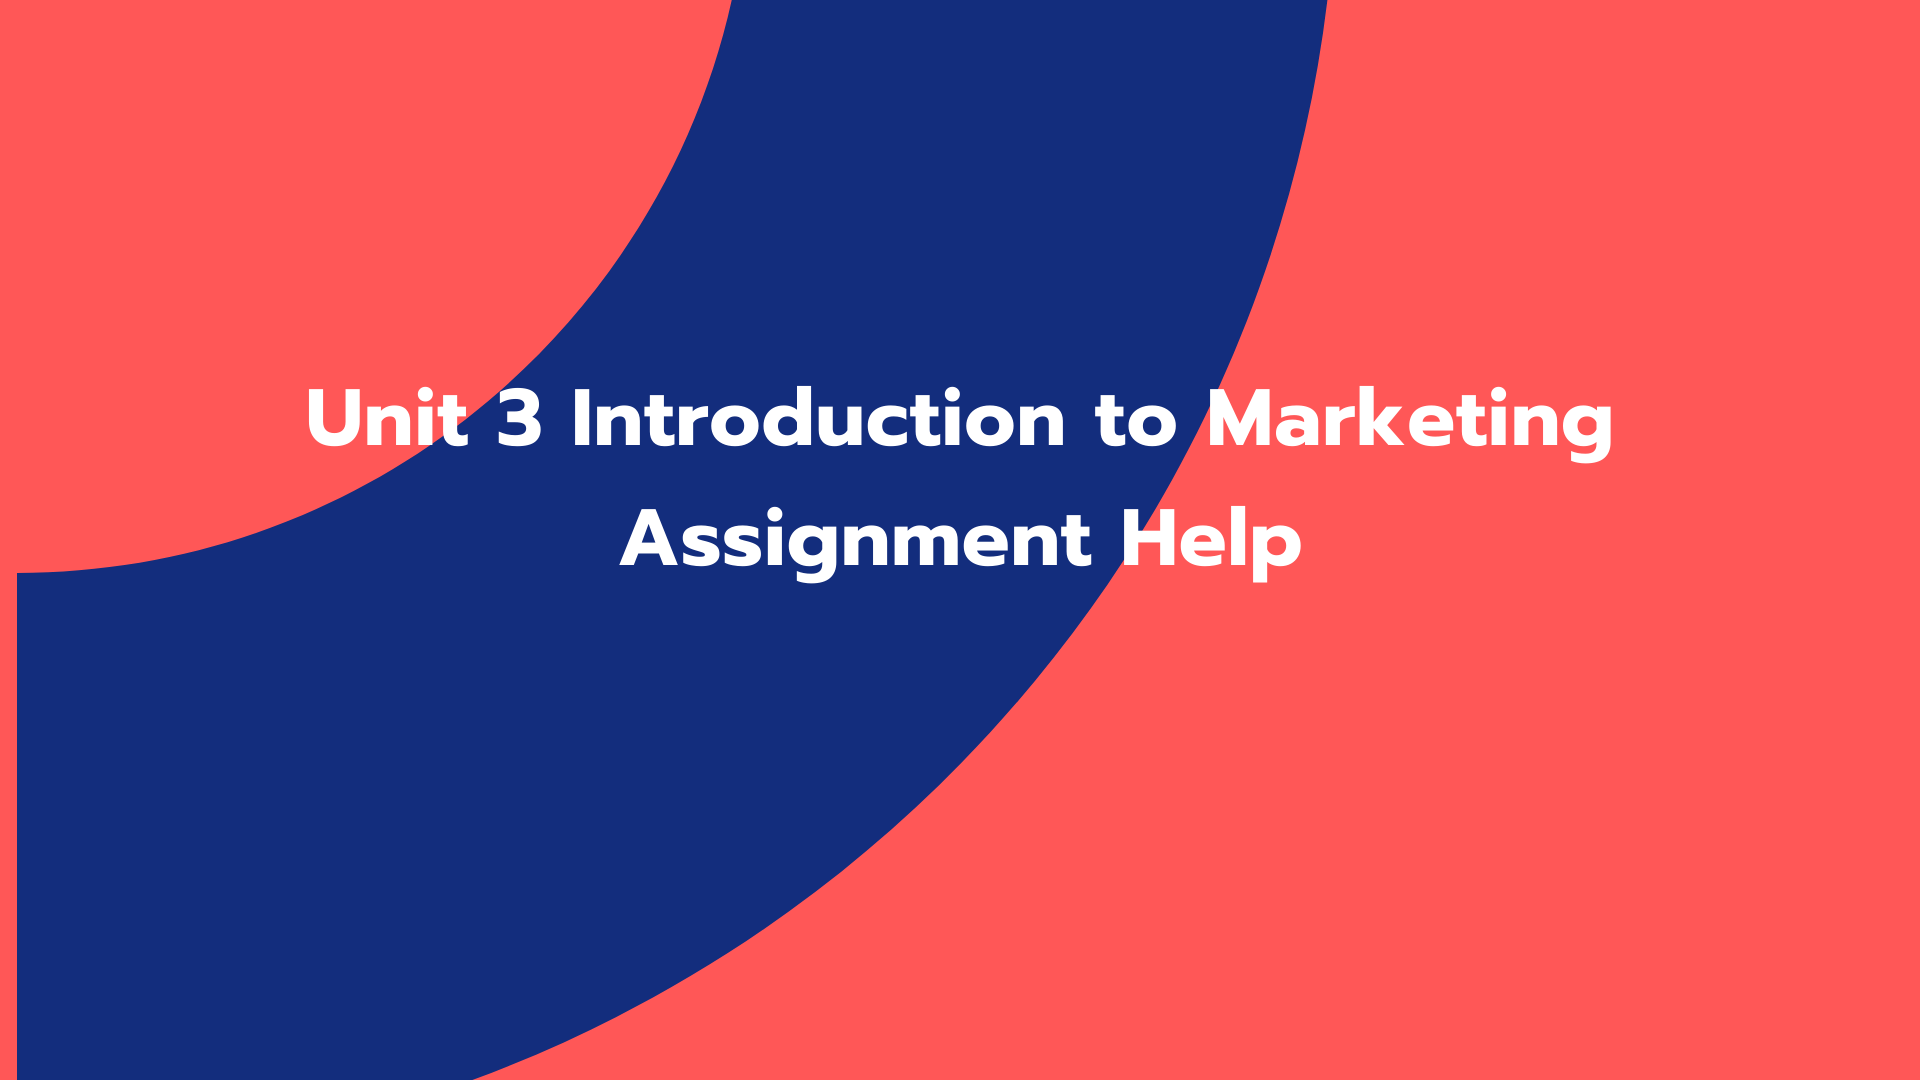 Unit 3 Introduction to Marketing Assignment Help